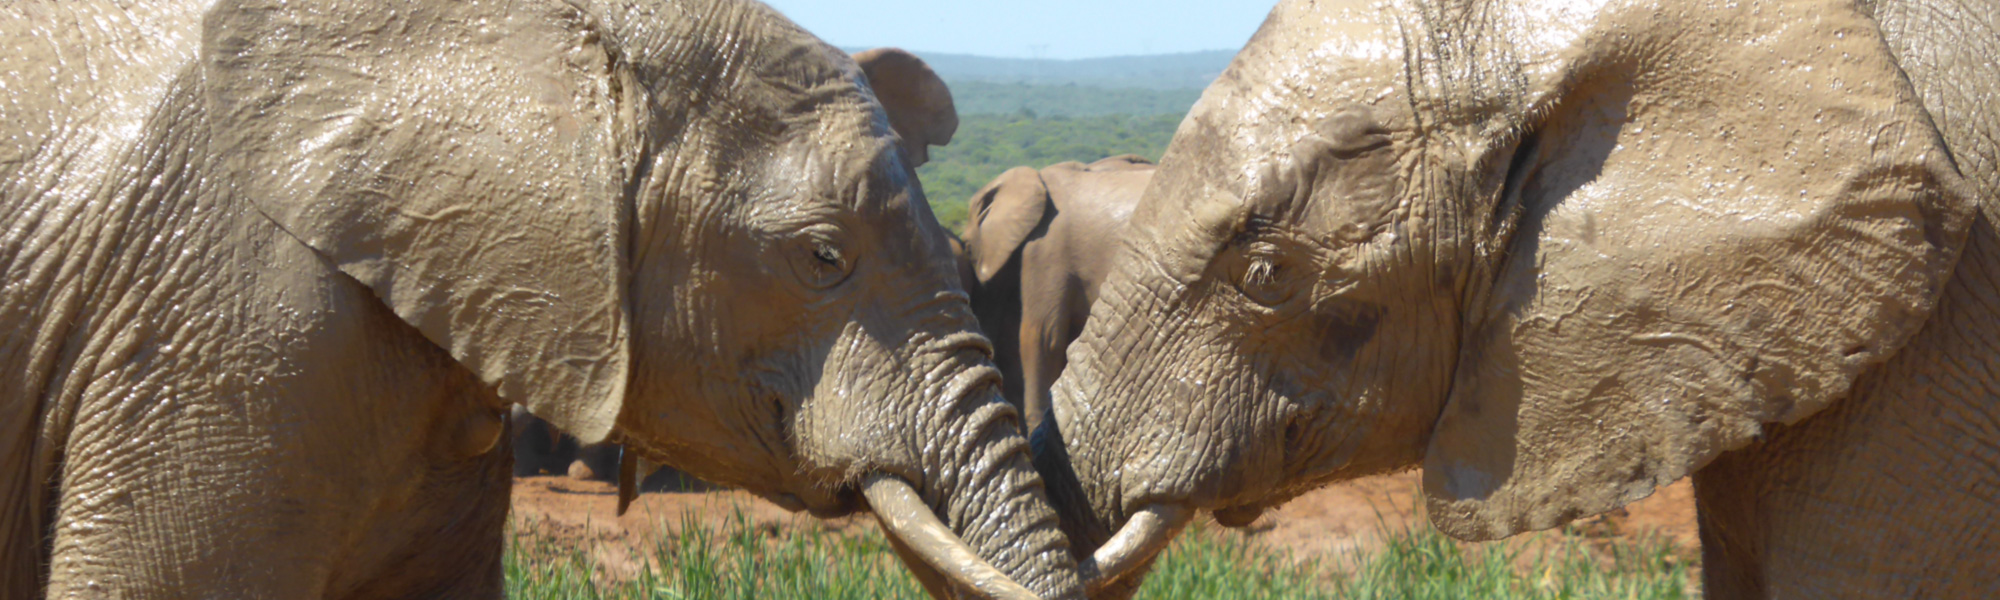 Gardenroute mit African Feeling